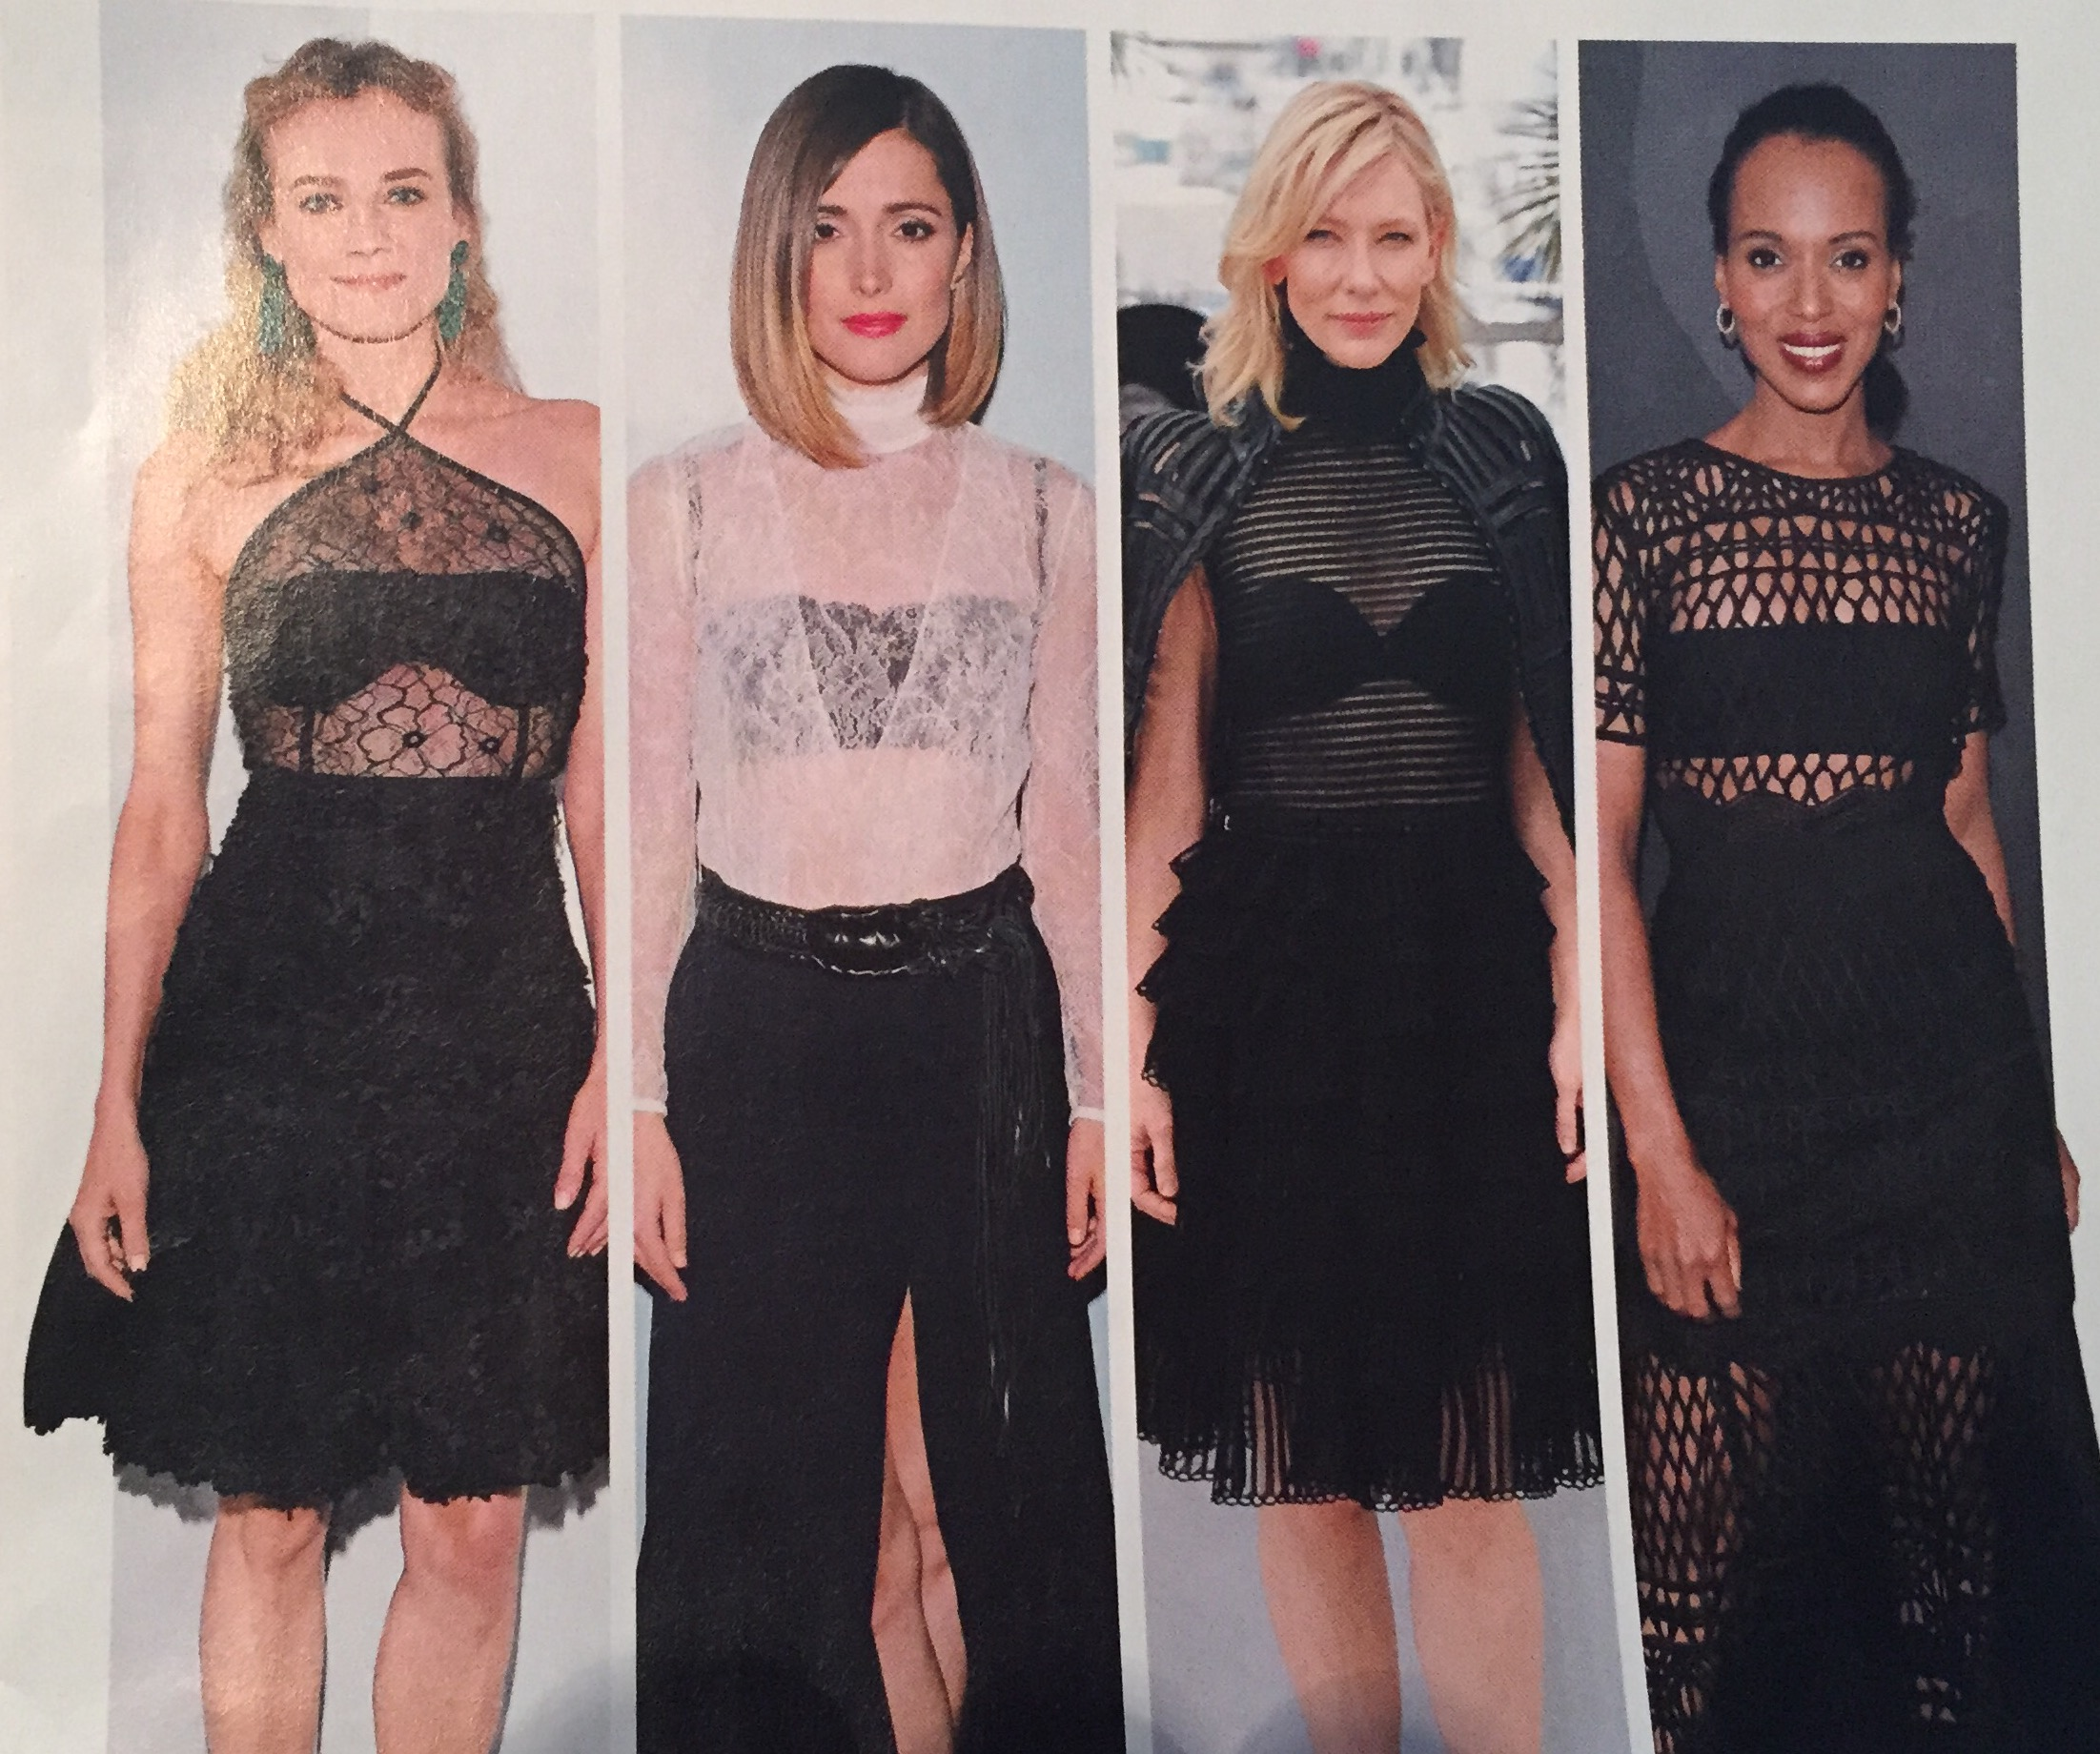 Lace Tops featured in INSTYLE Oct 2015